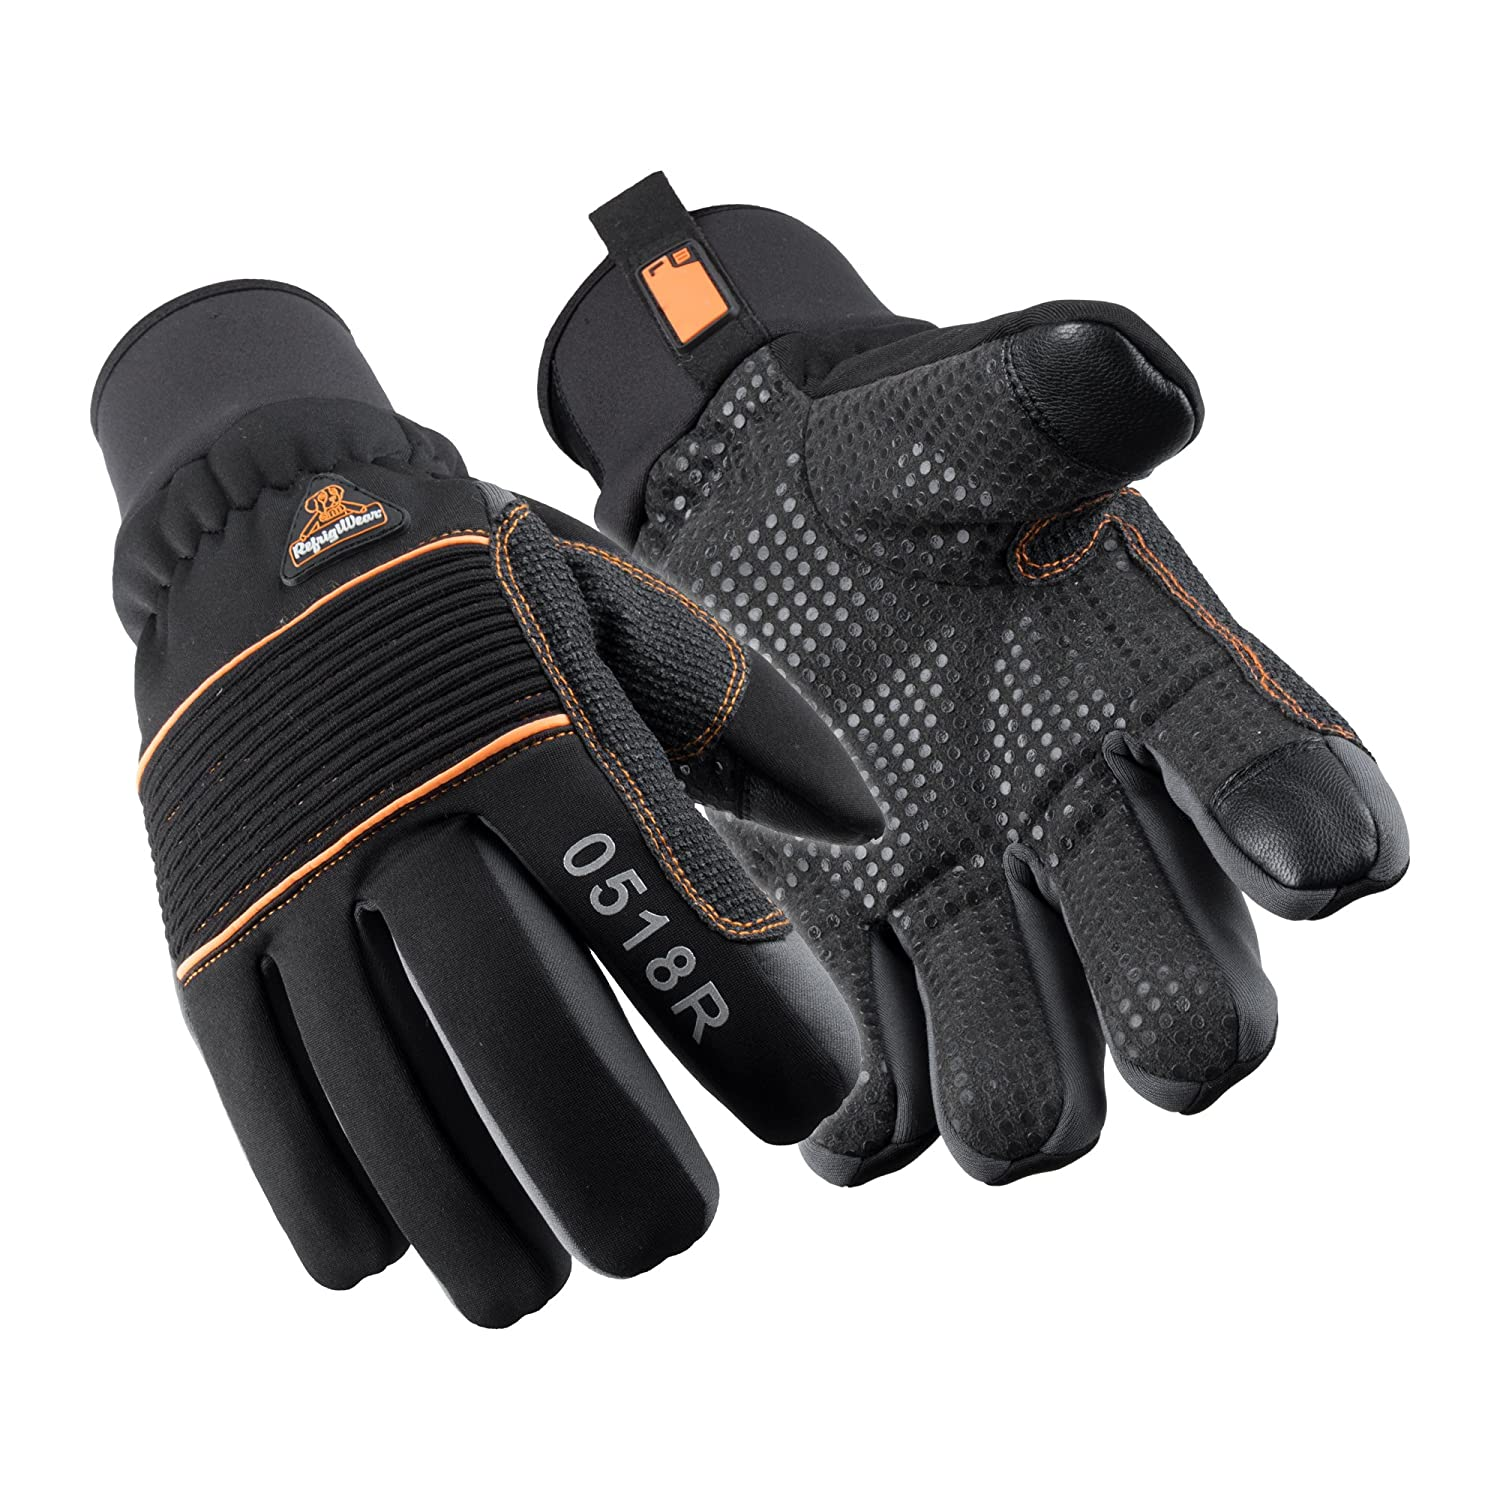 RefrigiWear Thinsulate Insulated PolarForce Gloves with Grip Assist and Performance Flex, Black 518